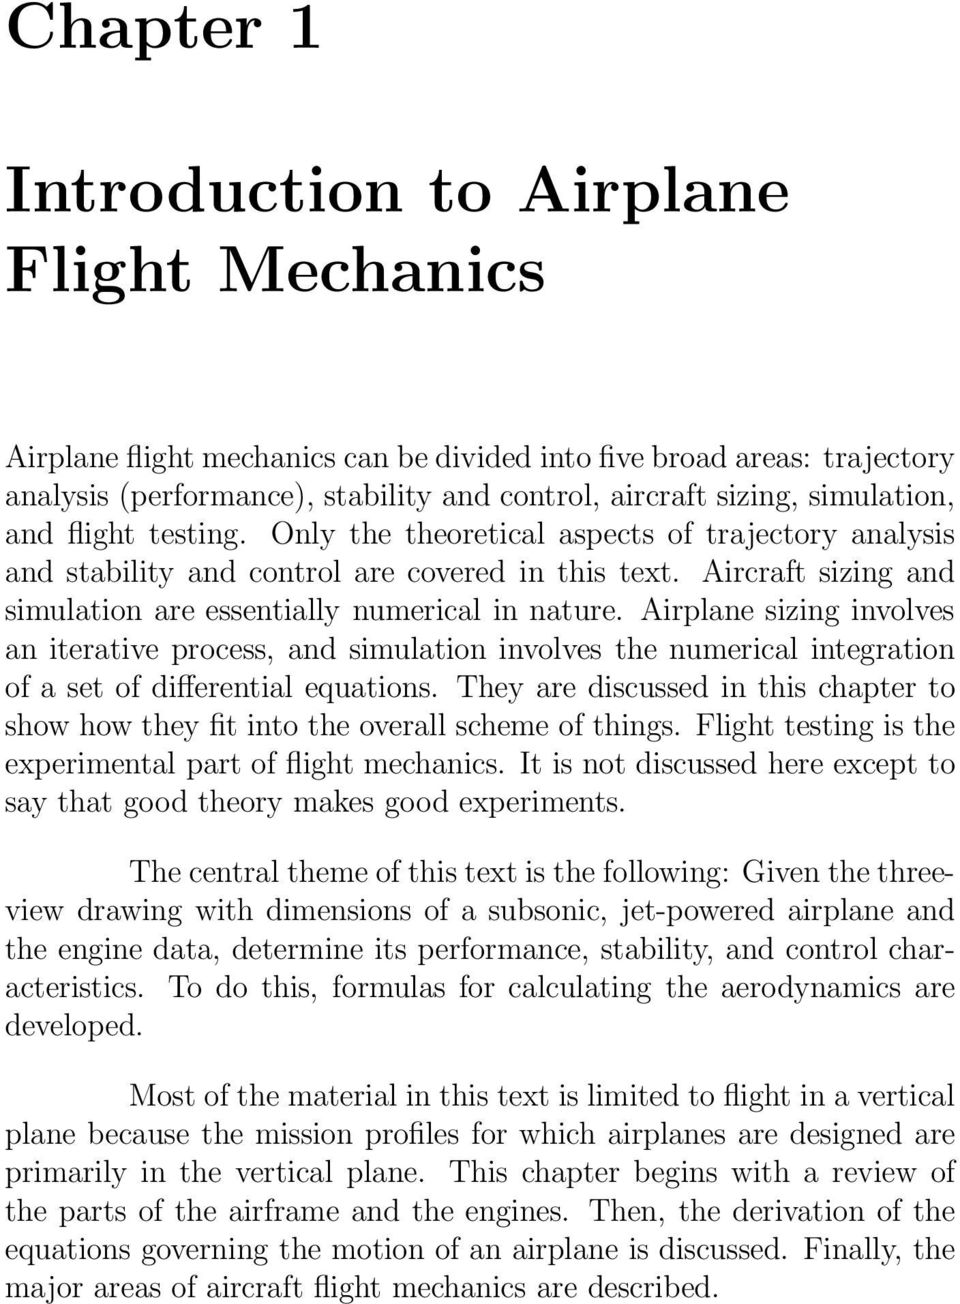 Aircraft sizing and simulation are essentially numerical in nature. Airplane sizing involves an iterative process, and simulation involves the numerical integration of a set of differential equations.